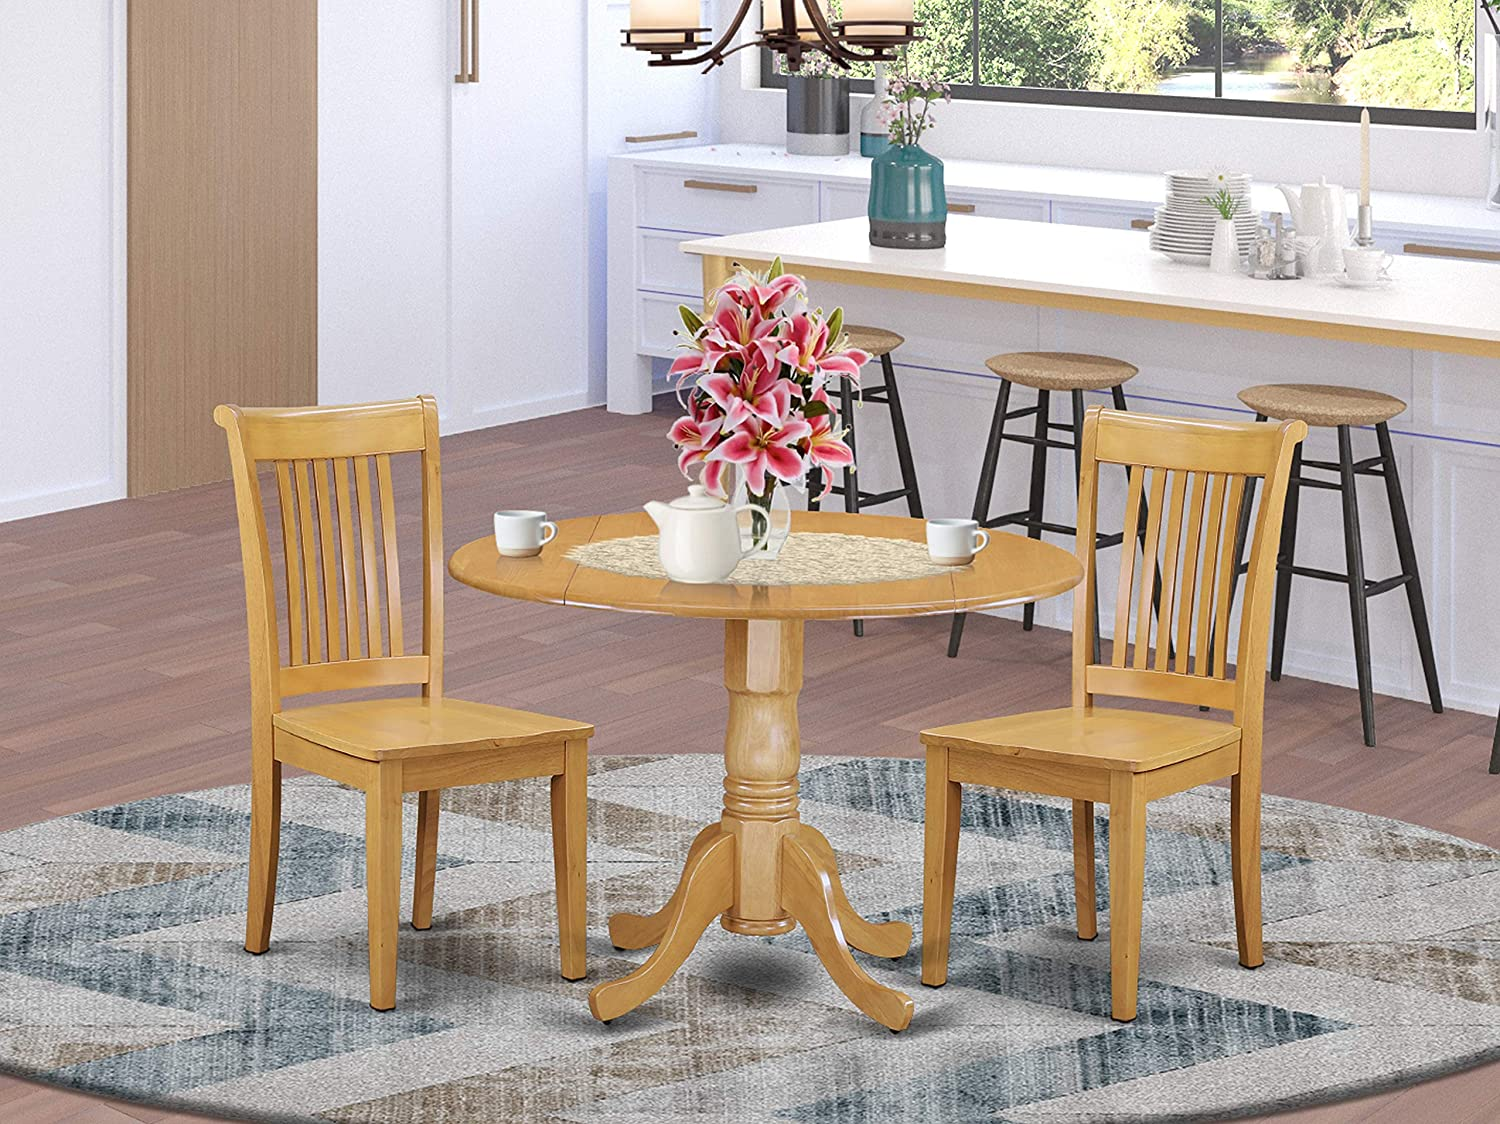 9 PC Dublin kitchen table set Dining table and 9 Wood Seat Kitchen chairs